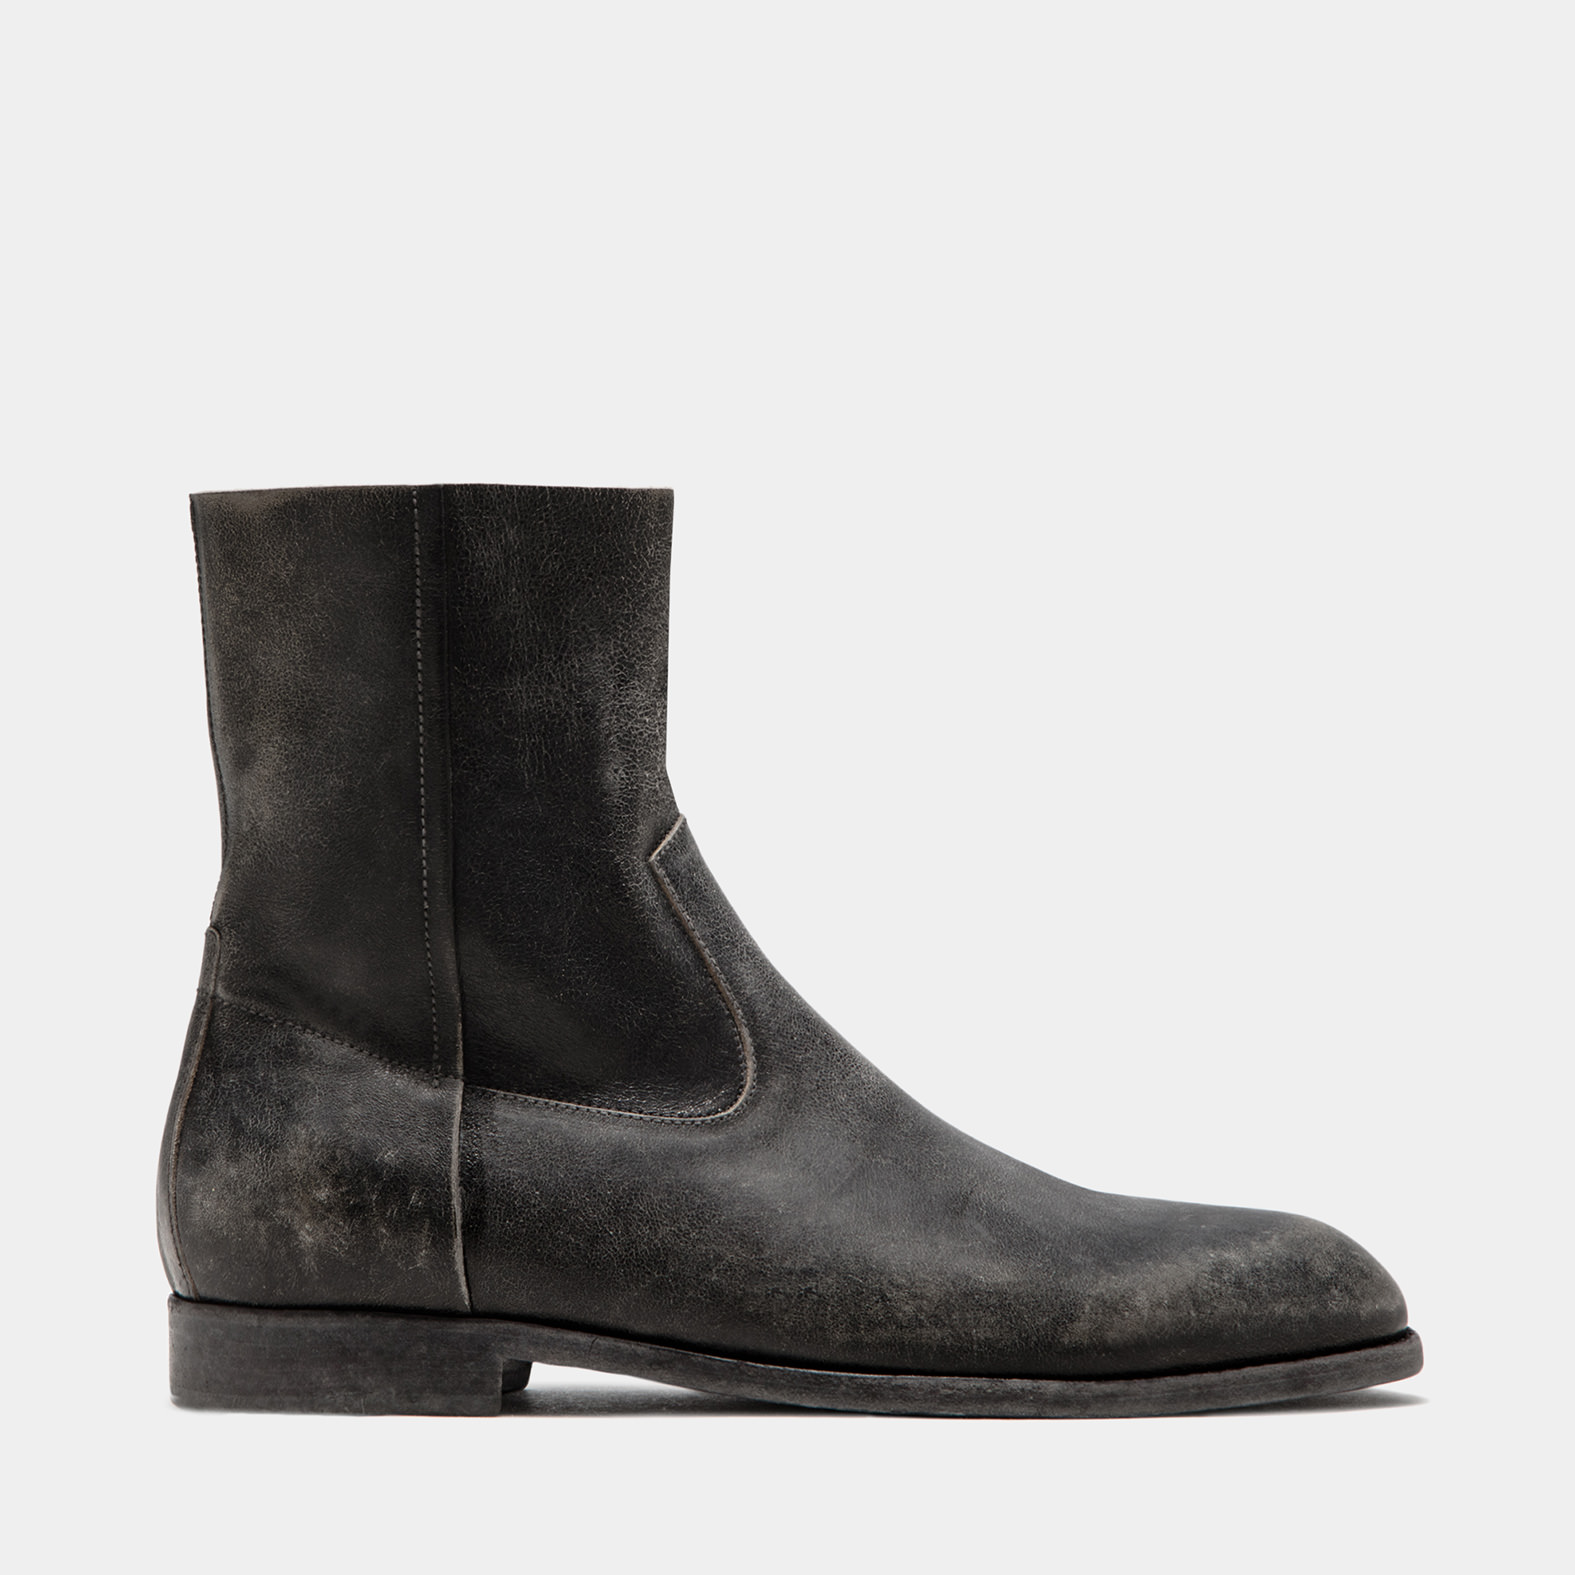 BUTTERO: BLACK USED EFFECT LEATHER FLOYD ANKLE BOOTS